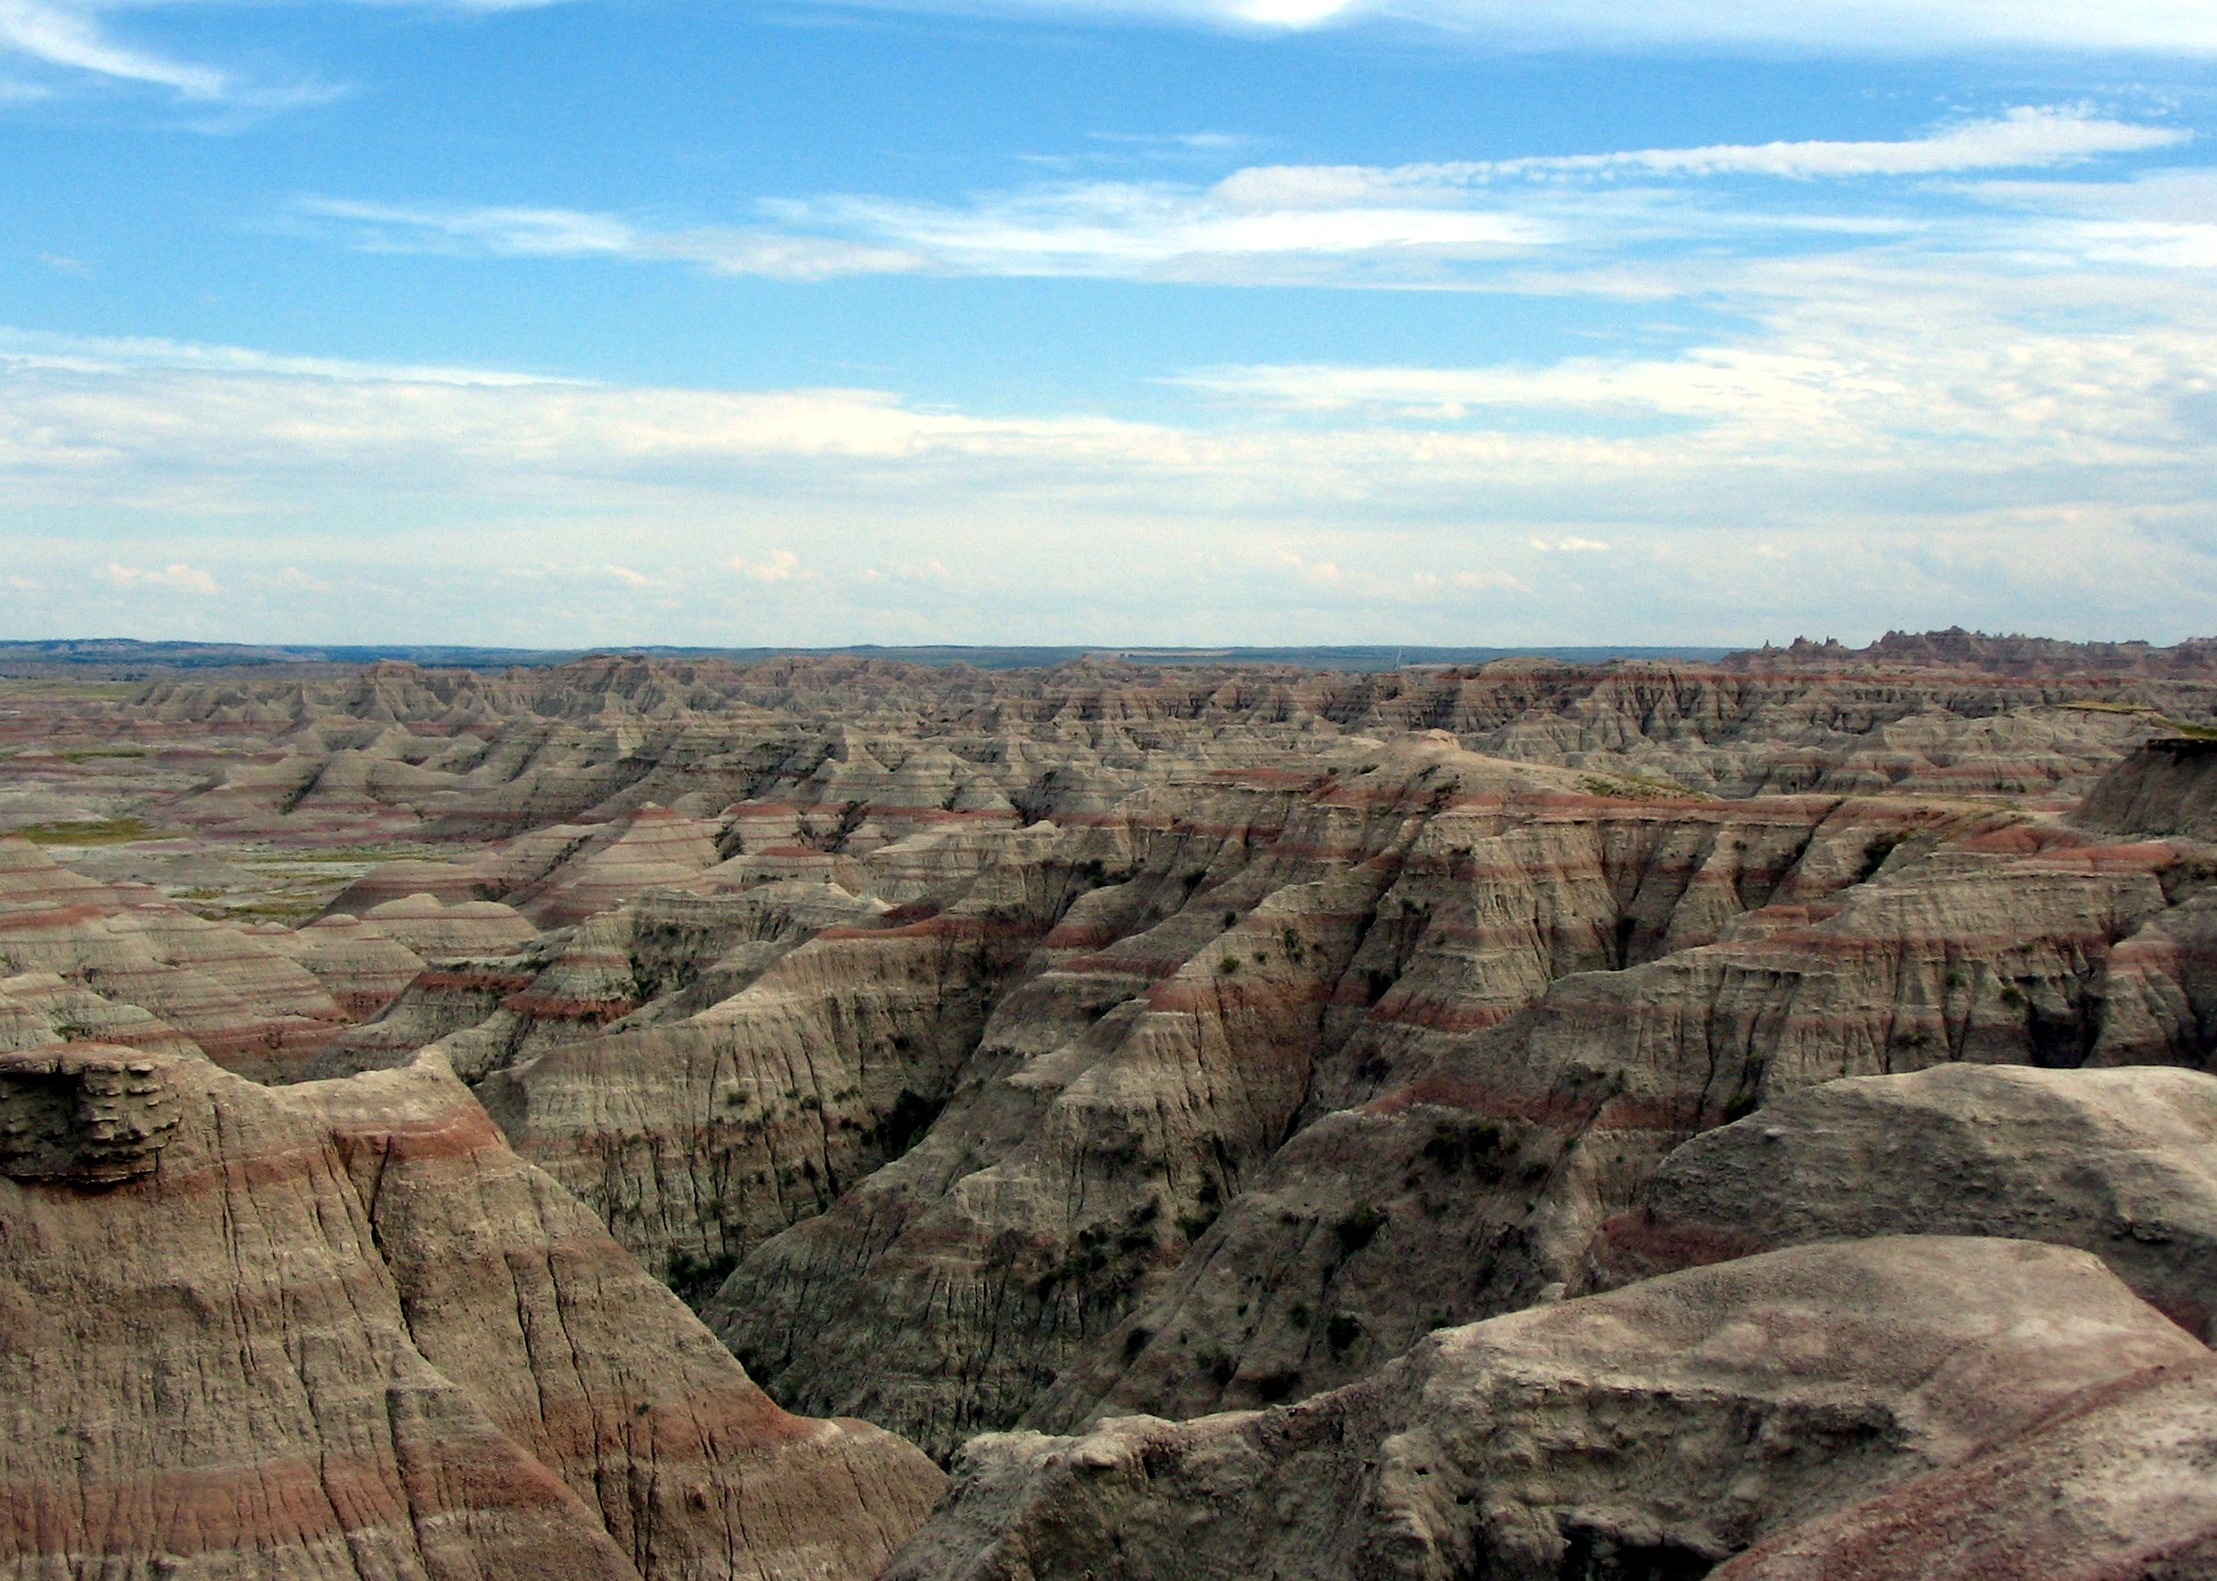 Badlands National Park in Badlands, South Dakota